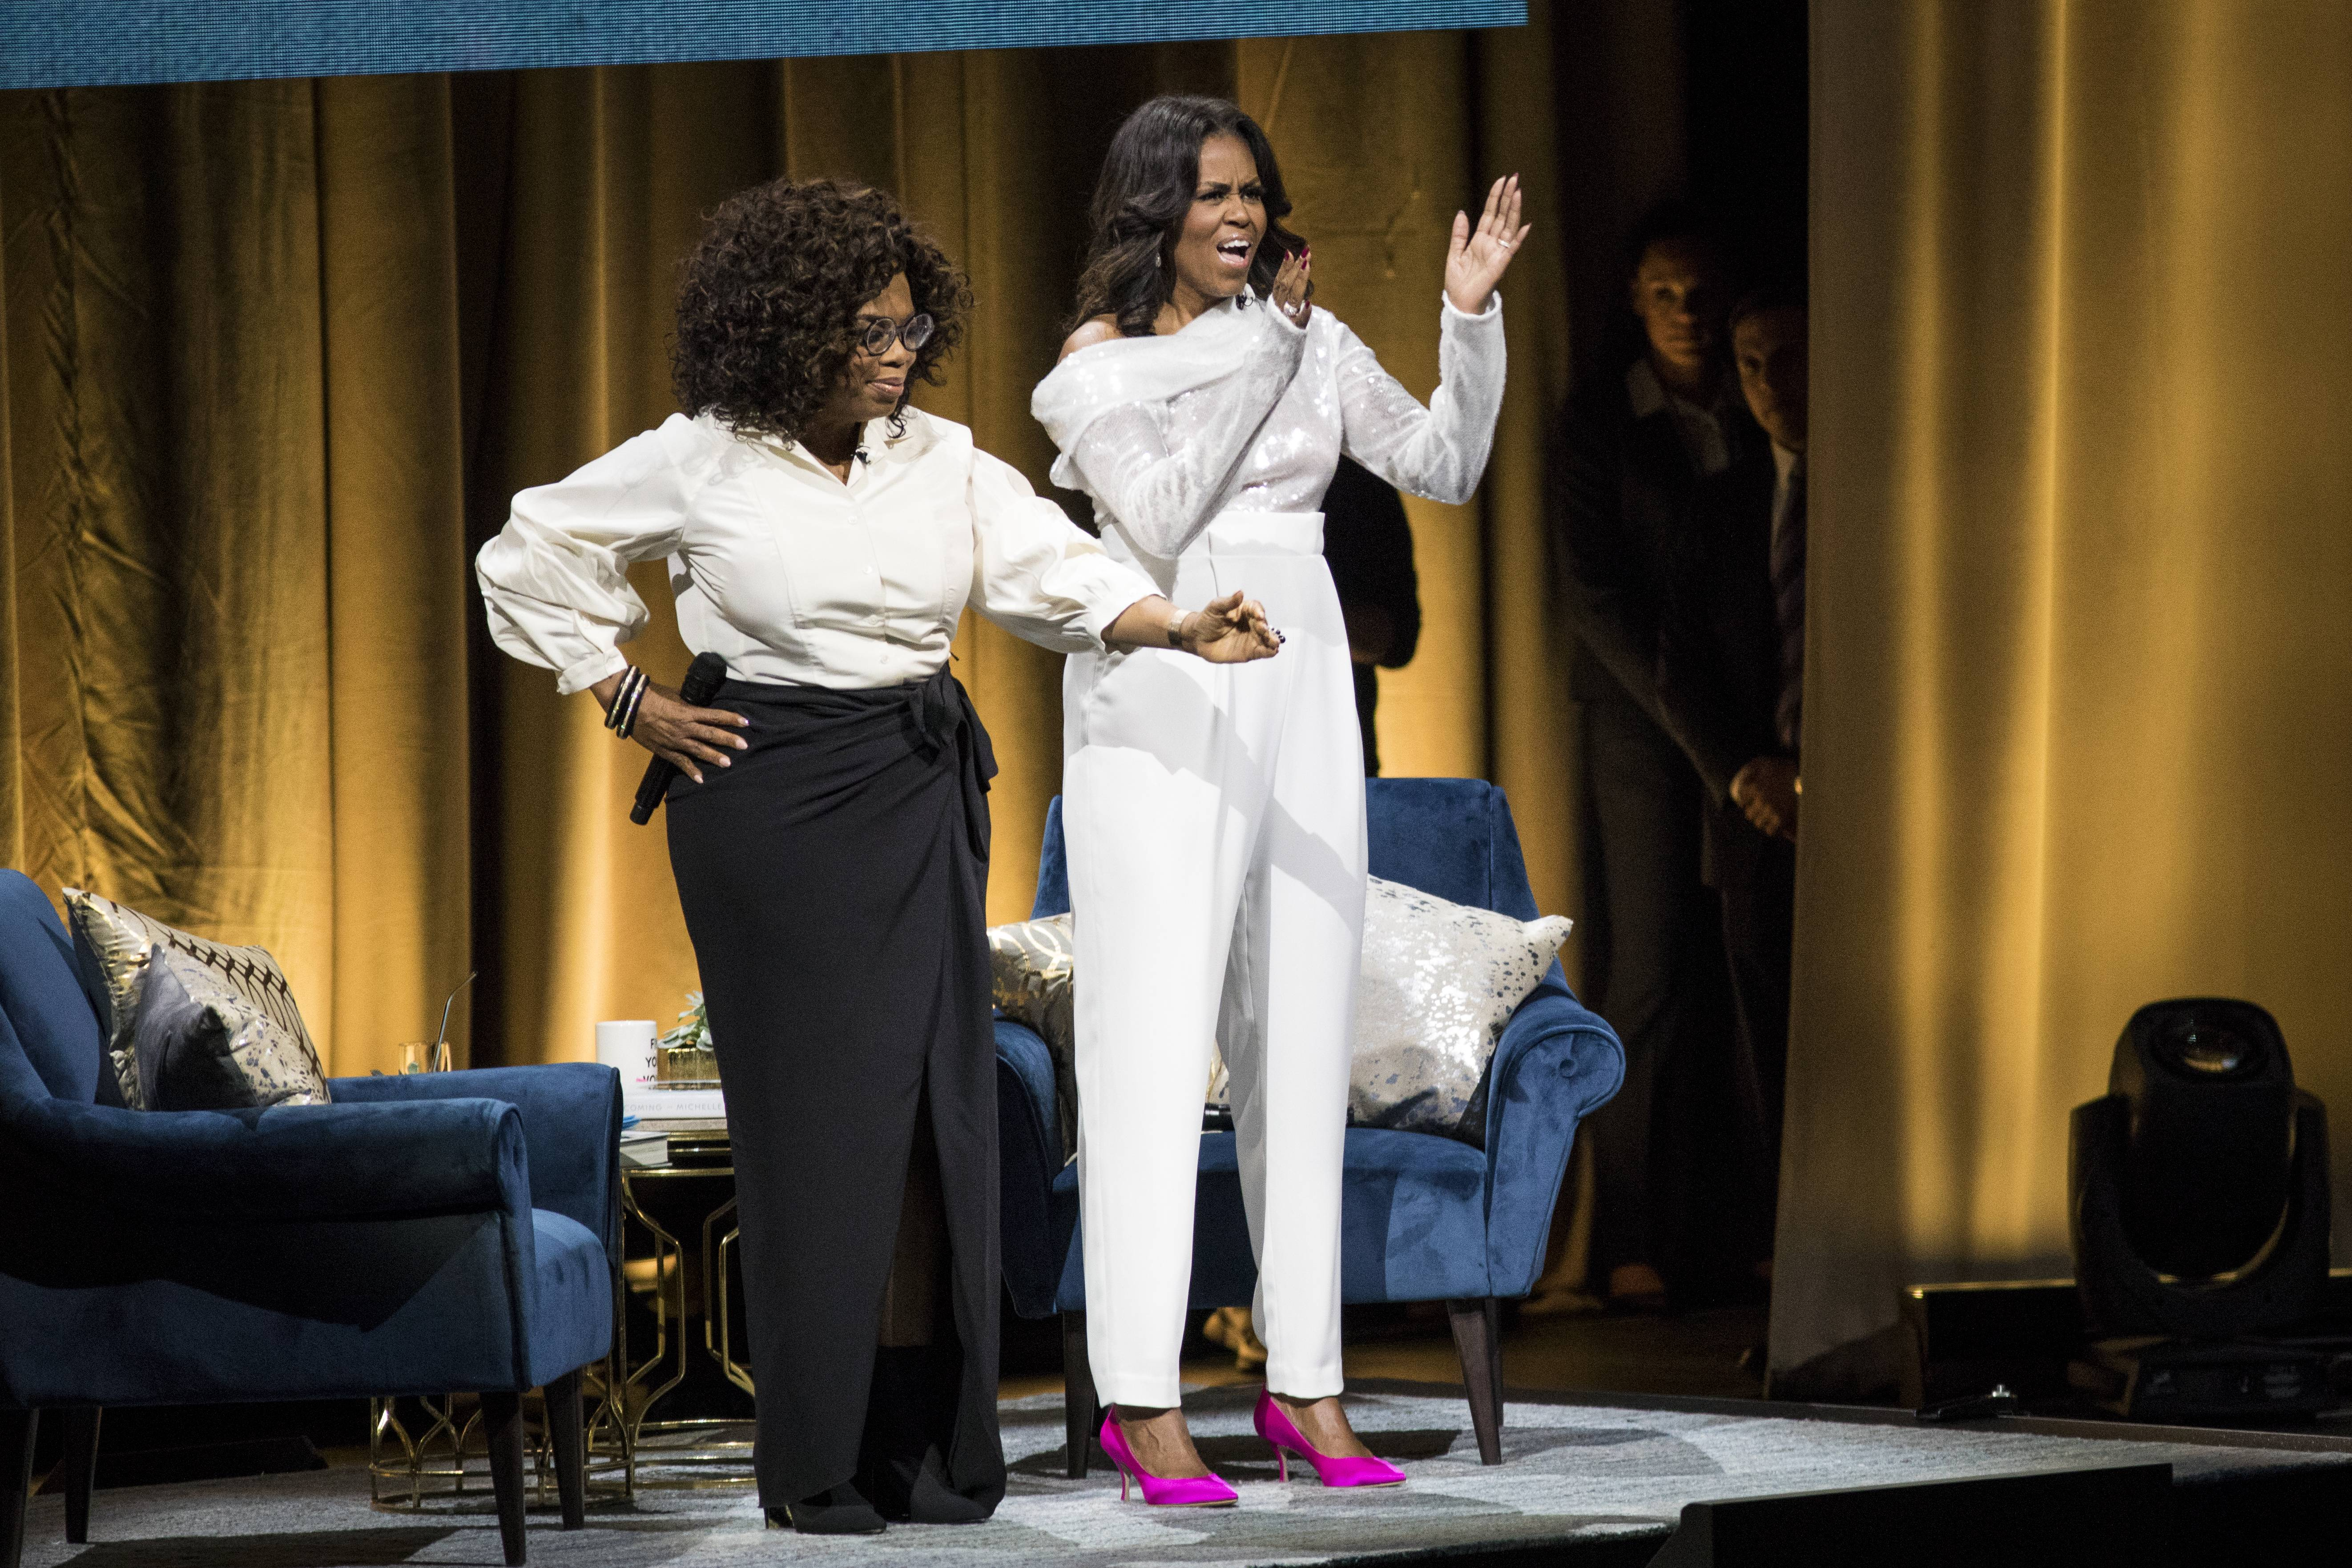 Listen to Michelle Obama: You have a voice, ladies